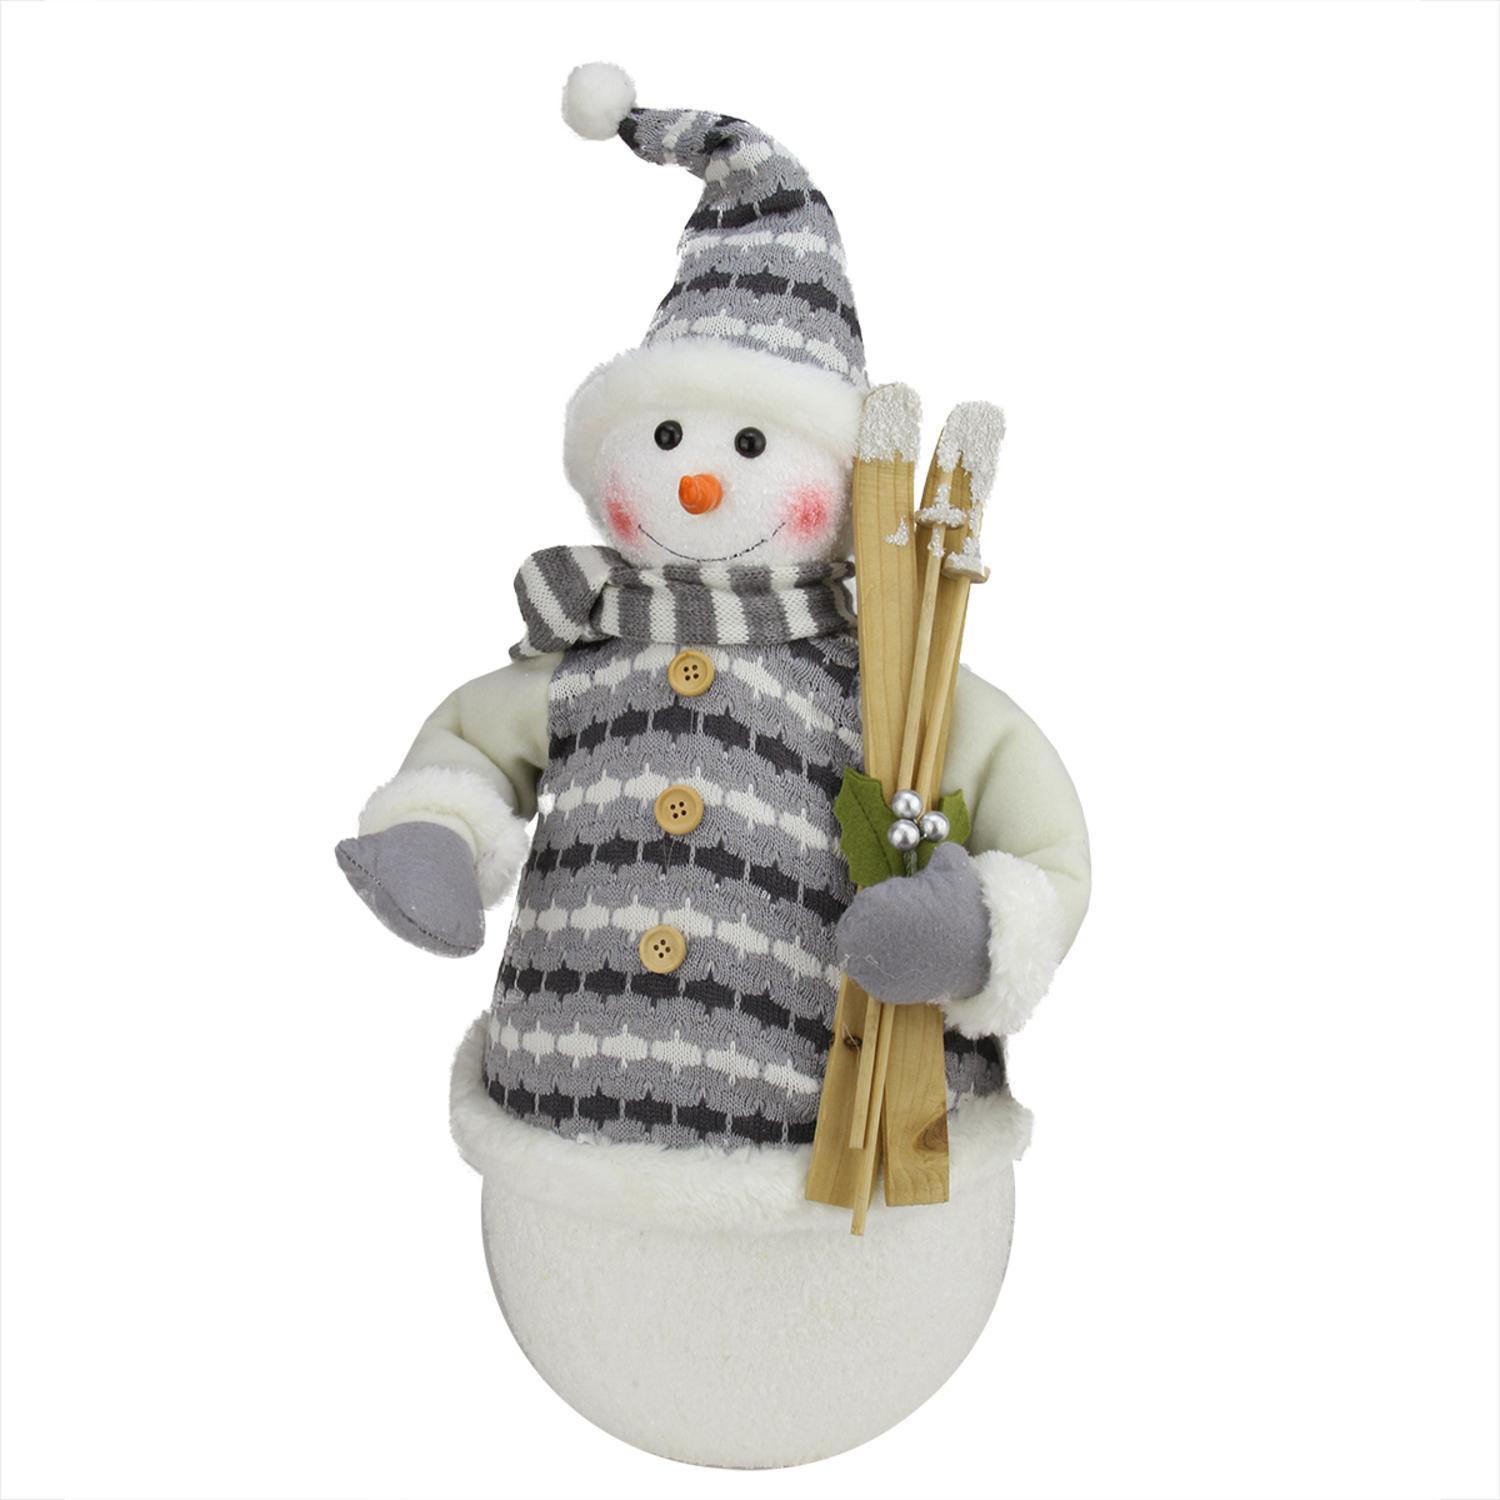 ''20'''' Alpine Chic Snowman with Gray and White JACKET Christmas Decoration''